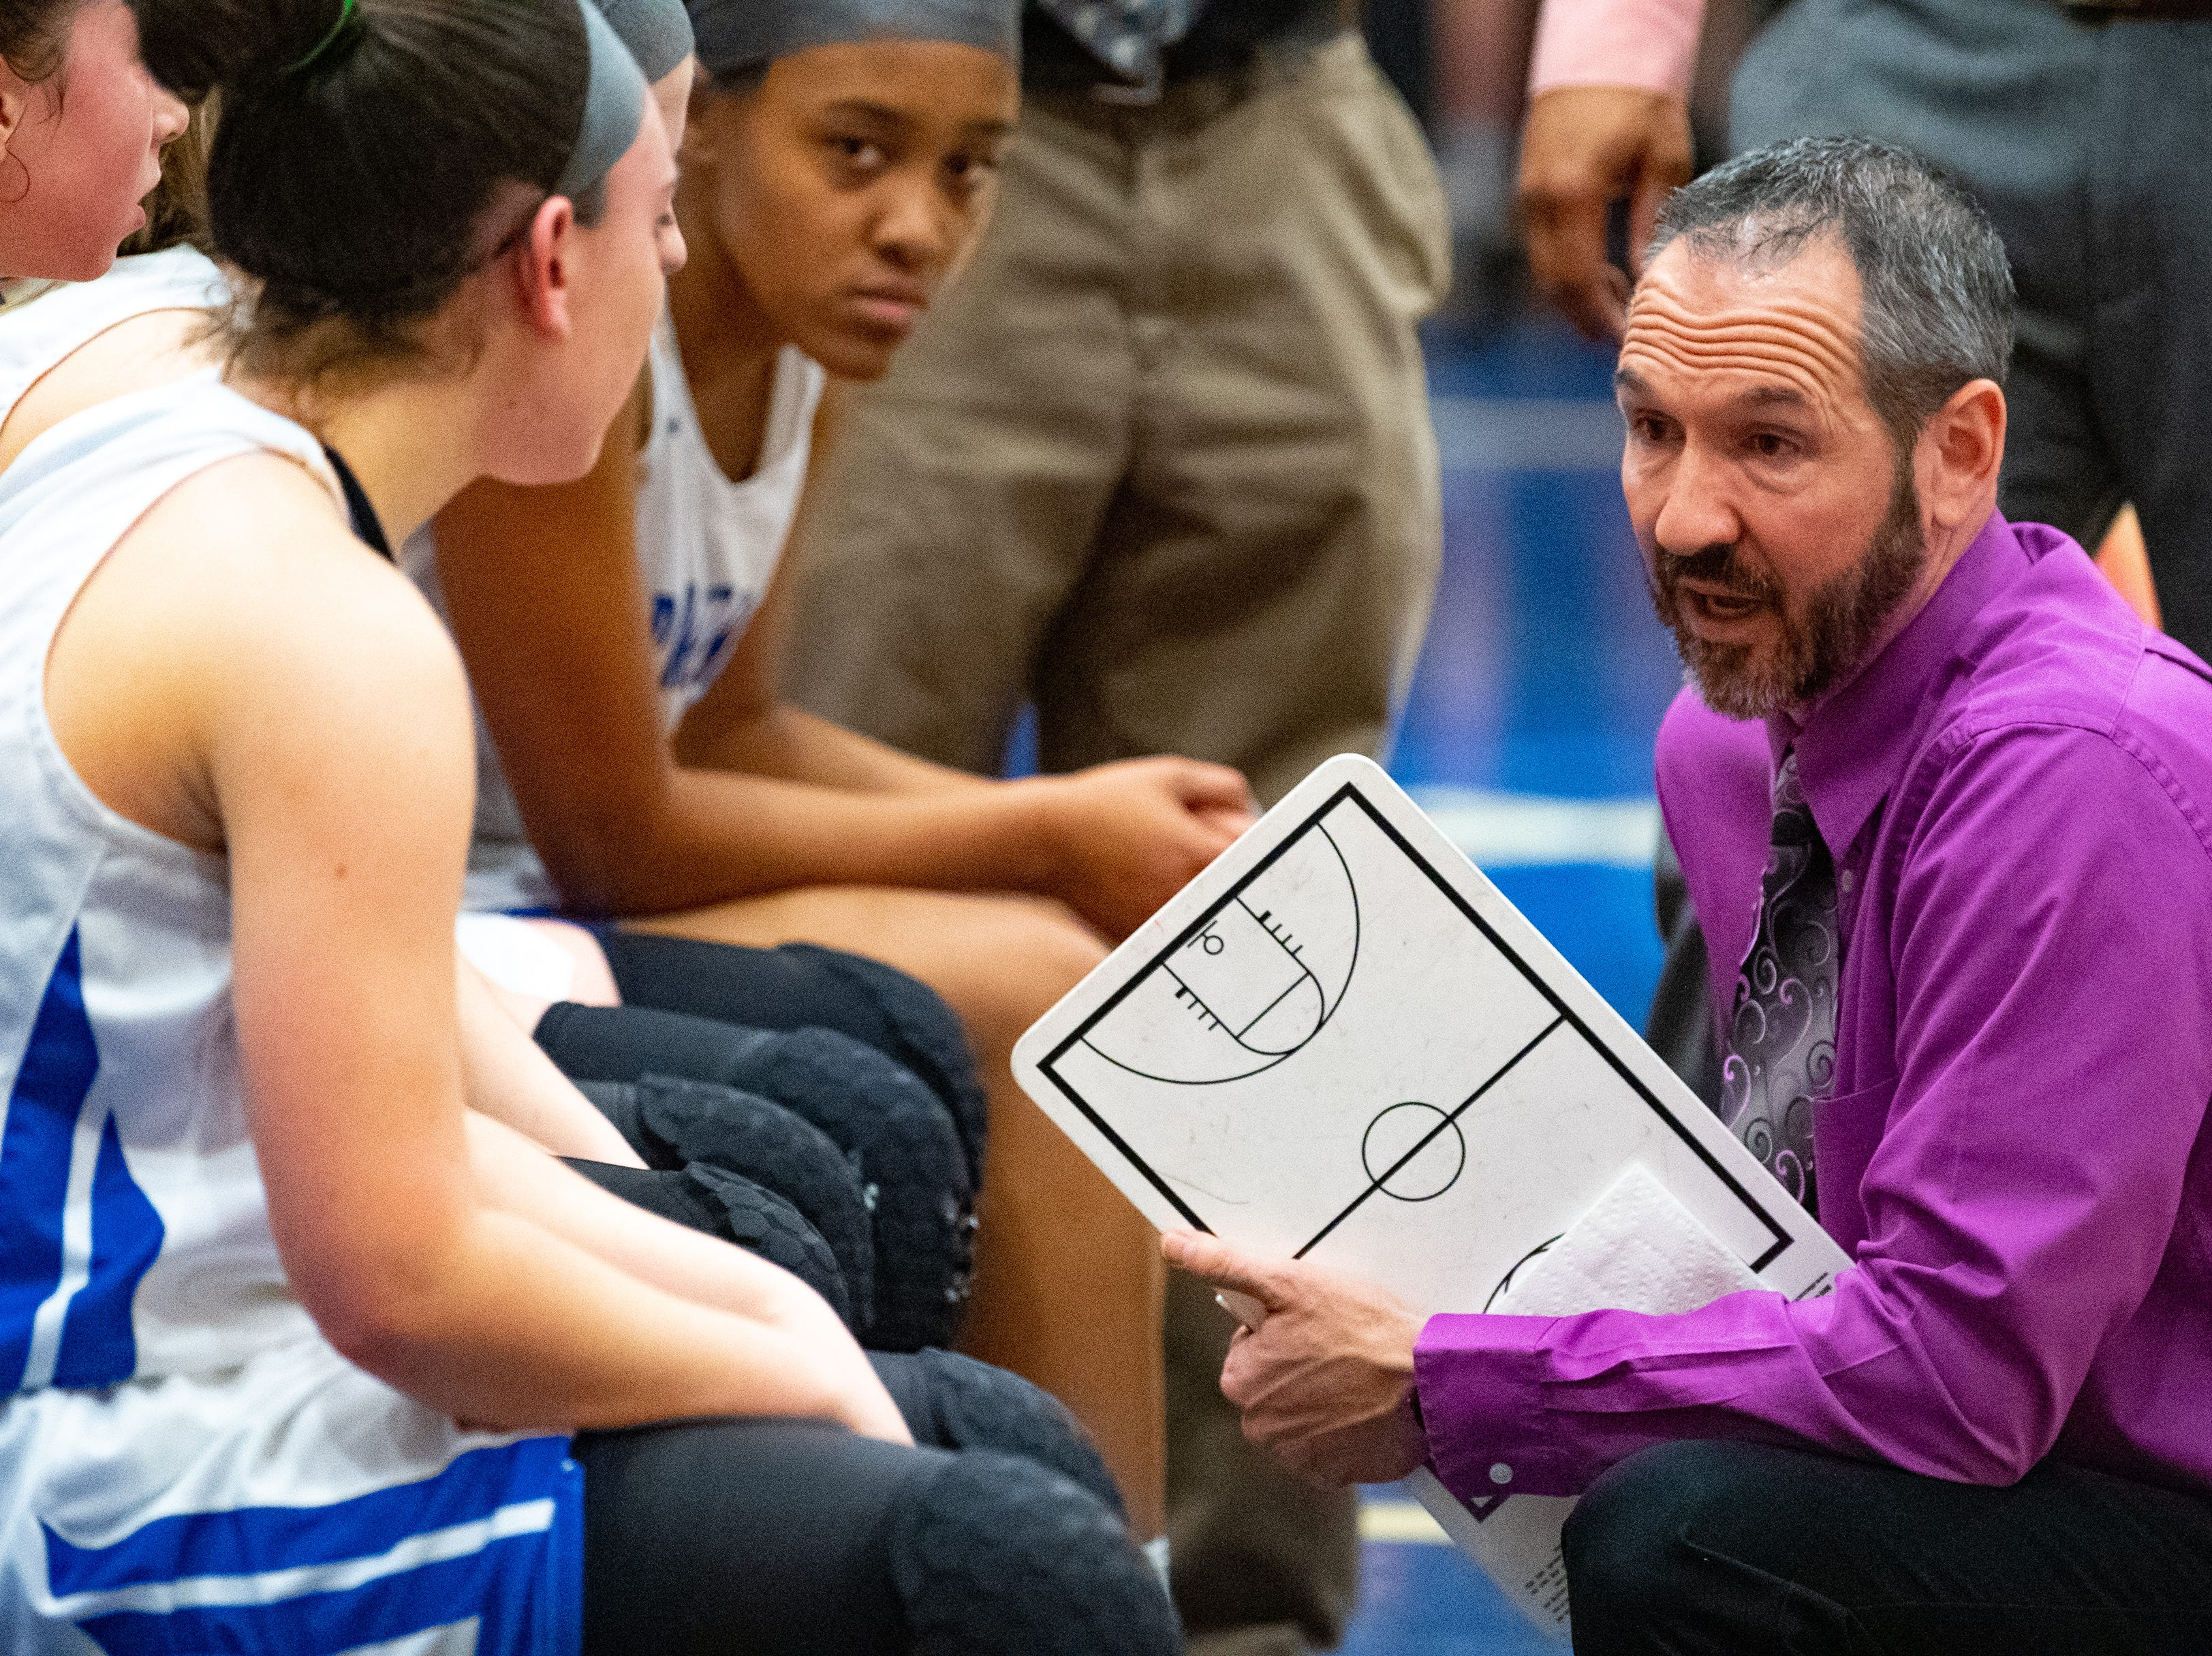 Spring Grove head coach Troy Sowers gives his team advice during a timeout in the District 3 Class 5A girls' basketball quarterfinal between Spring Grove and Palmyra, Friday, February 22, 2019 at Spring Grove Area High School. The Cougars defeated the Rockets 43 to 41.